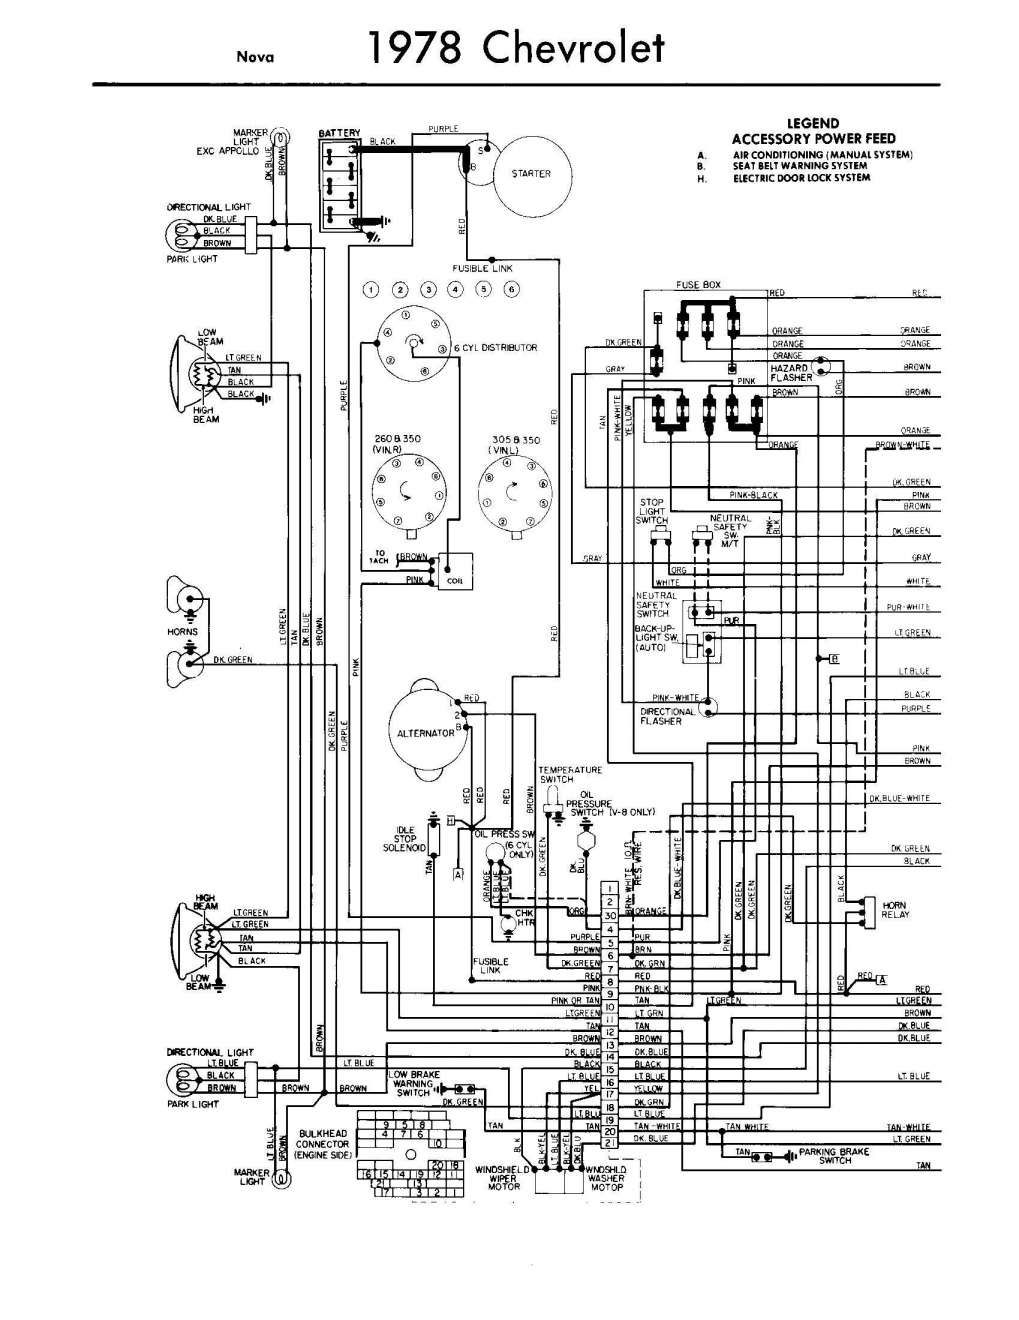 12 1978 Gmc Truck Wiring Diagram1978 Gmc Sierra Wiring Diagram 1978 Gmc Truck Wiring Diagram Truck Di In 2020 1979 Chevy Truck Chevy Trucks Electrical Wiring Diagram